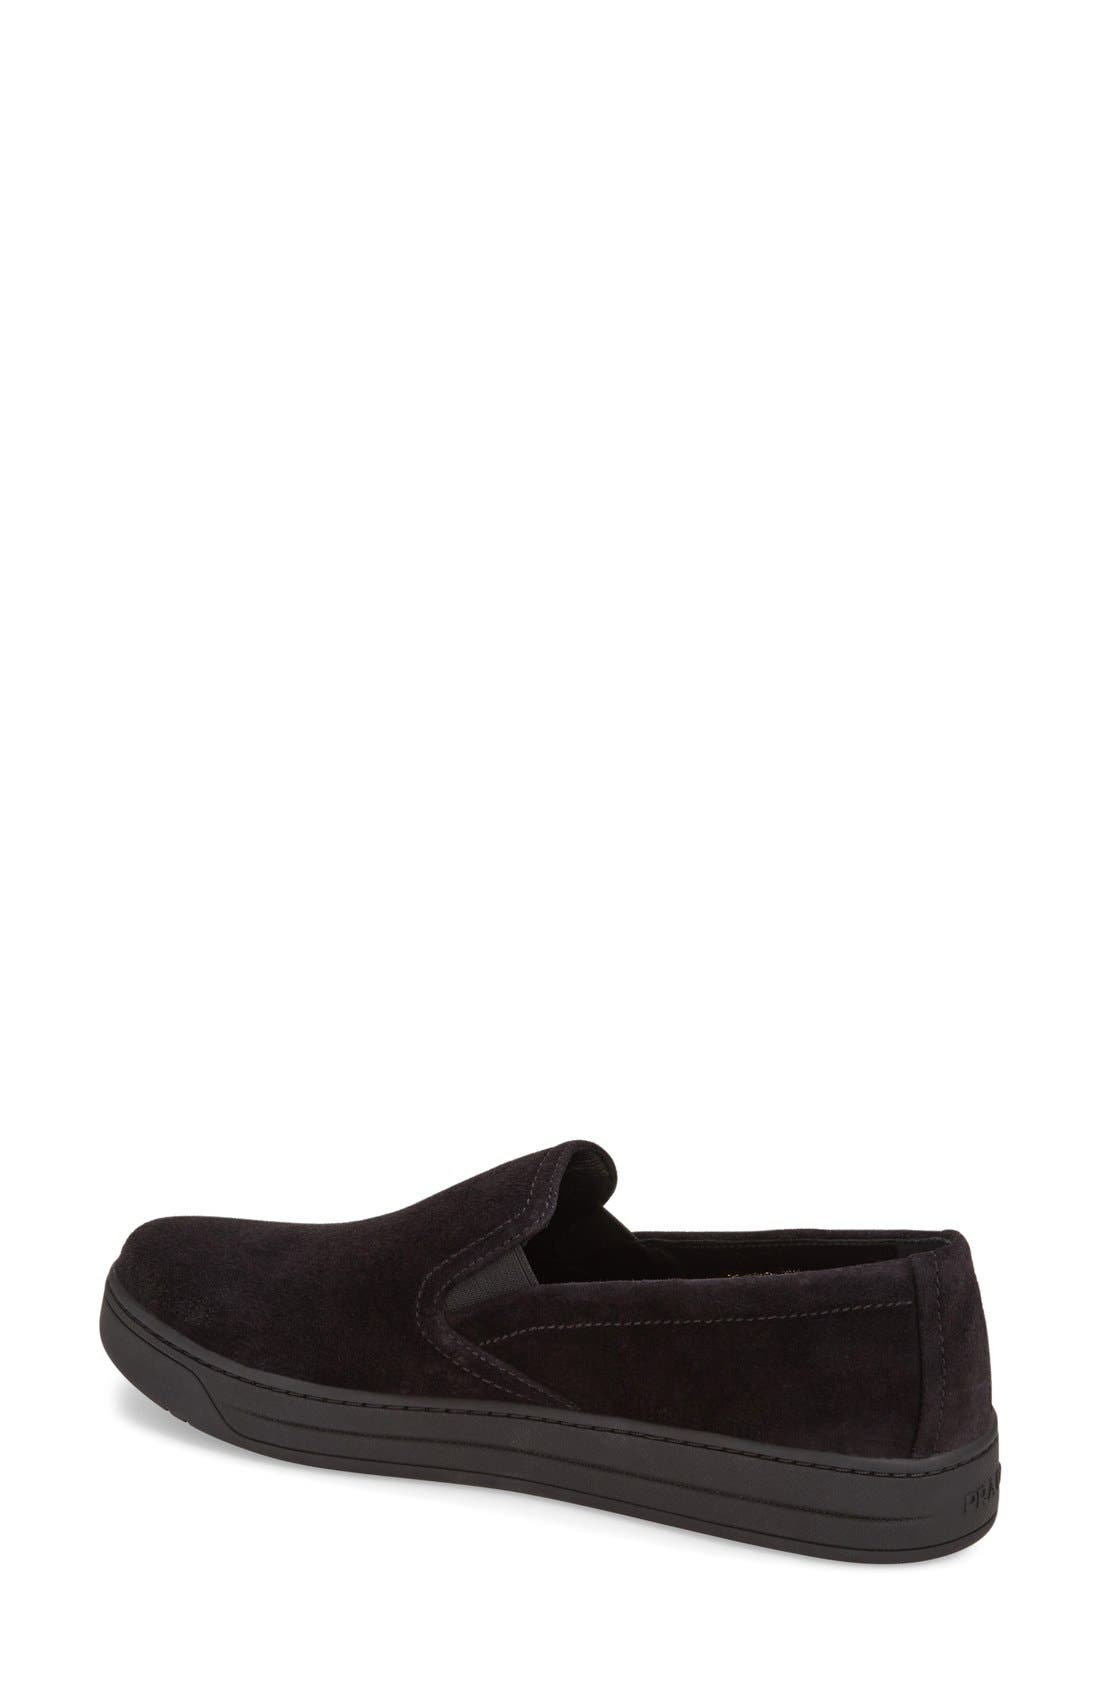 Slip-On Sneaker,                             Alternate thumbnail 23, color,